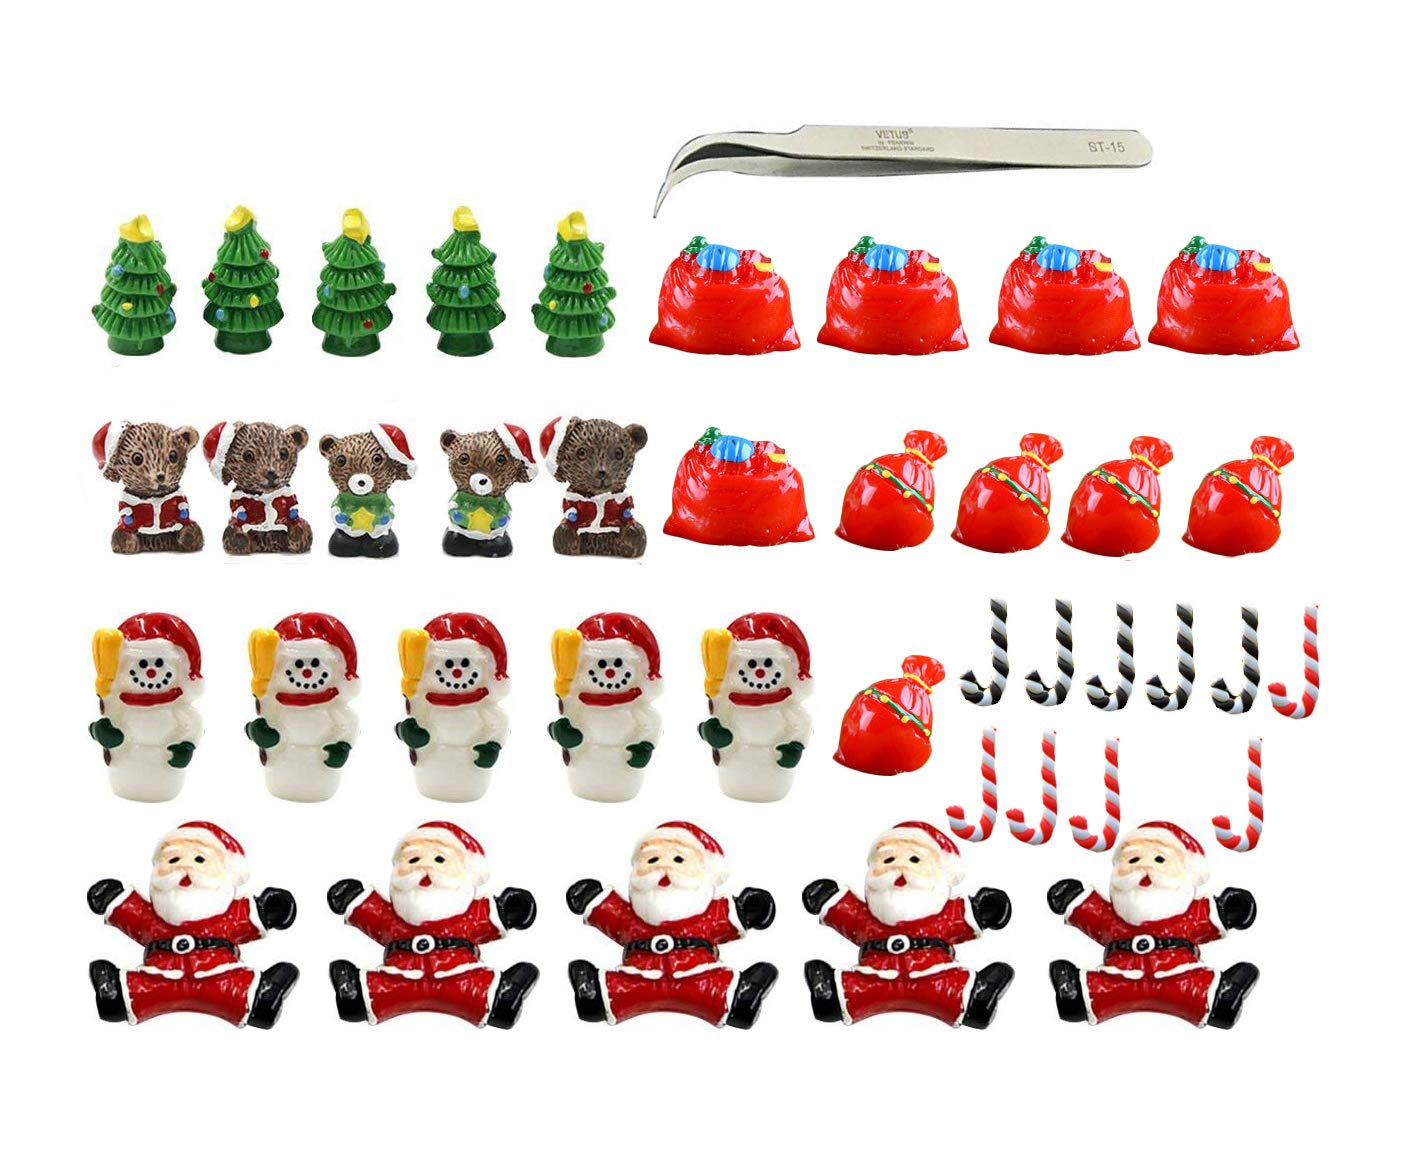 Christmas Miniature Ornaments, 40pcs Christmas Fairy Garden Accessories Kit Dollhouse Miniature Figurines Decoration, Micro Landscape Flowerpot Decor Resin Snowman|Santa|Beer|Xmas Tree with Tweezer